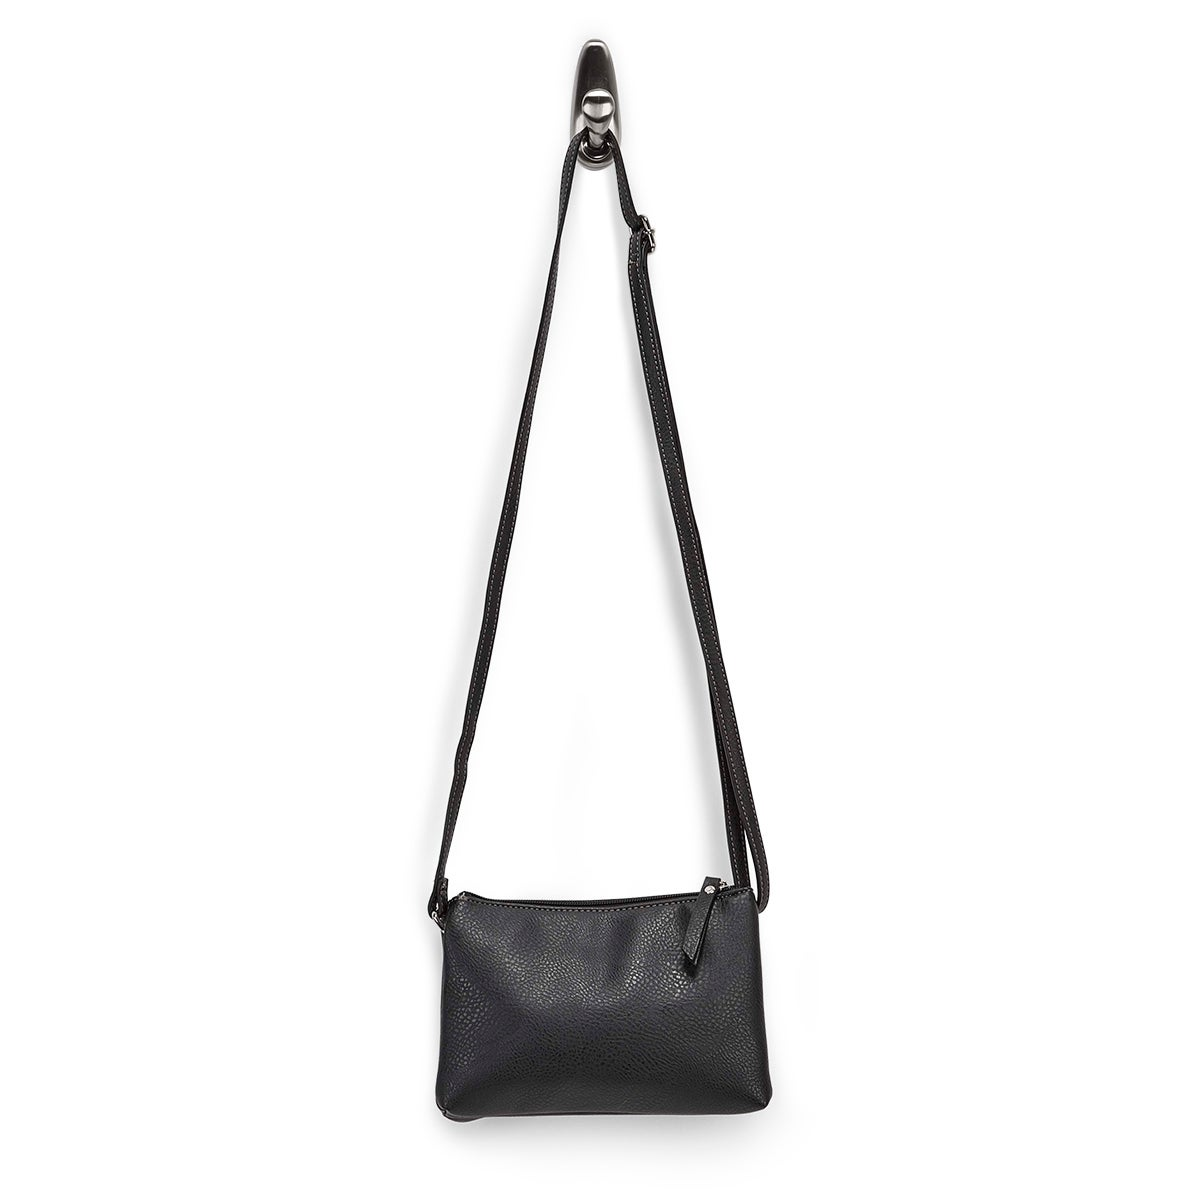 Lds black 2 compartment mini cross body